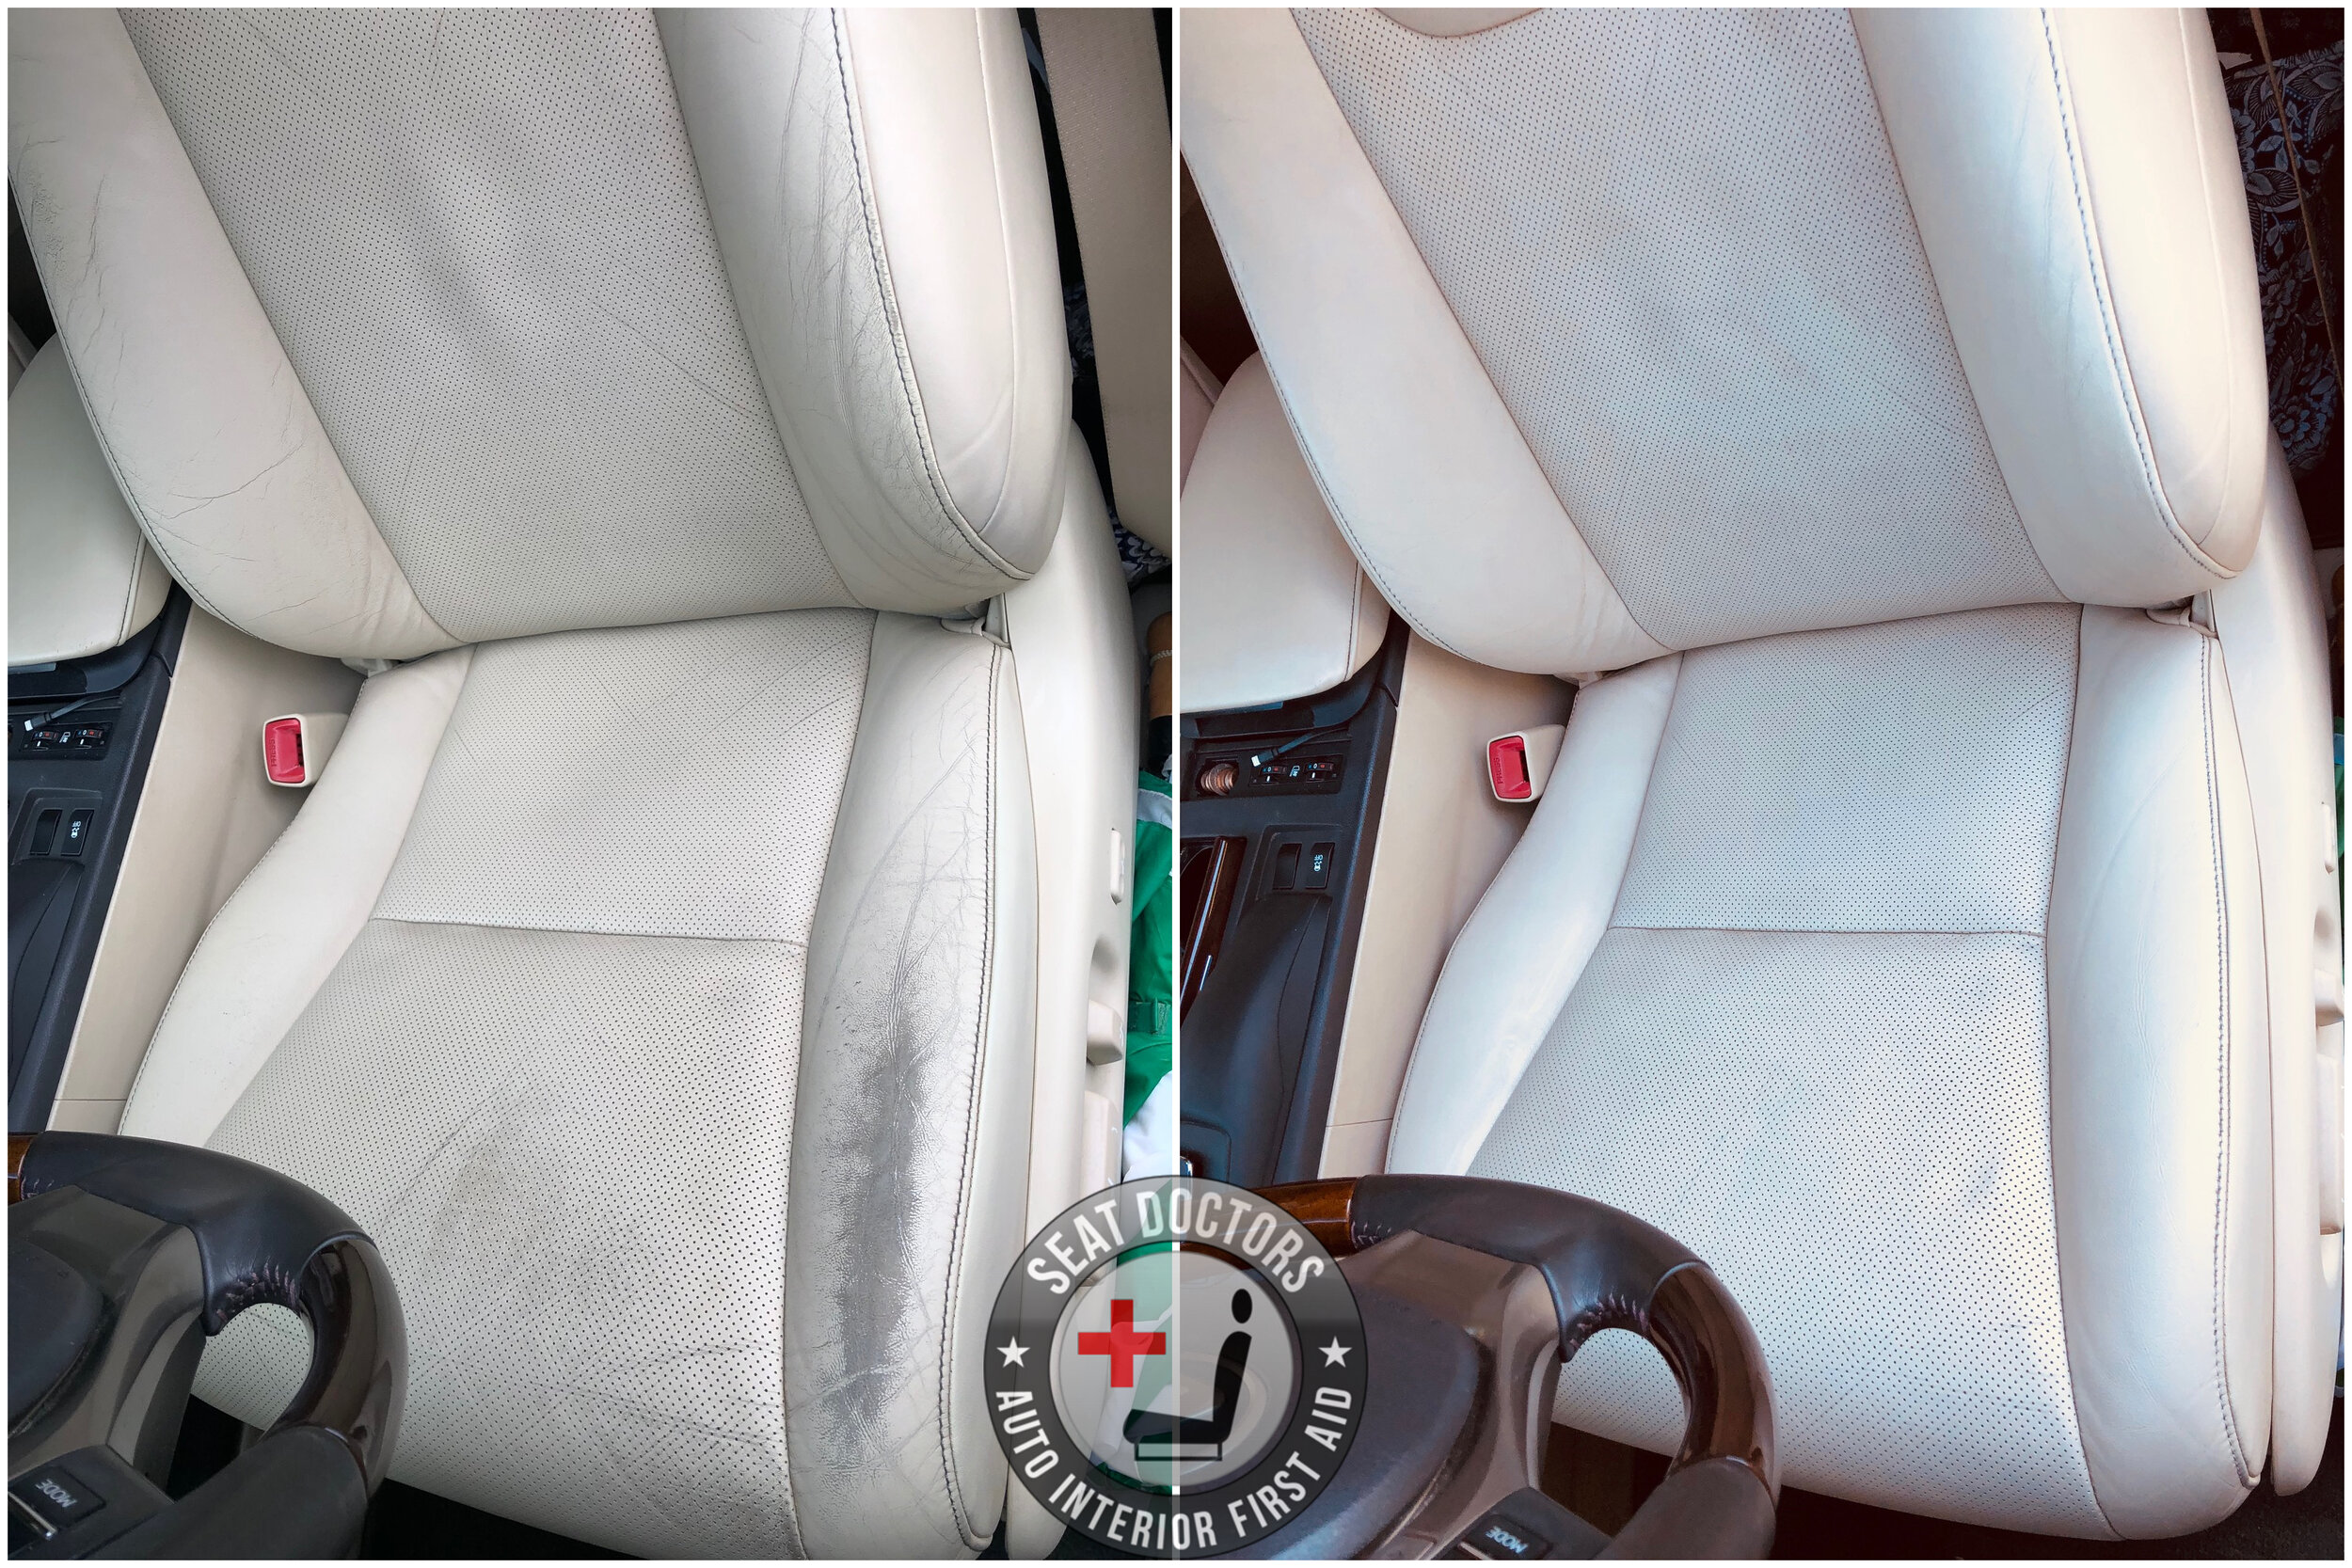 Customer submitted! They were able to touch up the driver's seat in their 2014 Lexus RX 350 with some Parchment leather touch up dye. If you're looking to touch up the interior on your RX 350, check out this page for more information :  https://www.seatdoctors.com/lexus-leather-dye/lexus-rx-leather-dye .  If you're not sure what you've got in your car and could use some help, check out our Custom Leather Dye page here:  https://www.seatdoctors.com/diy-leather-dye